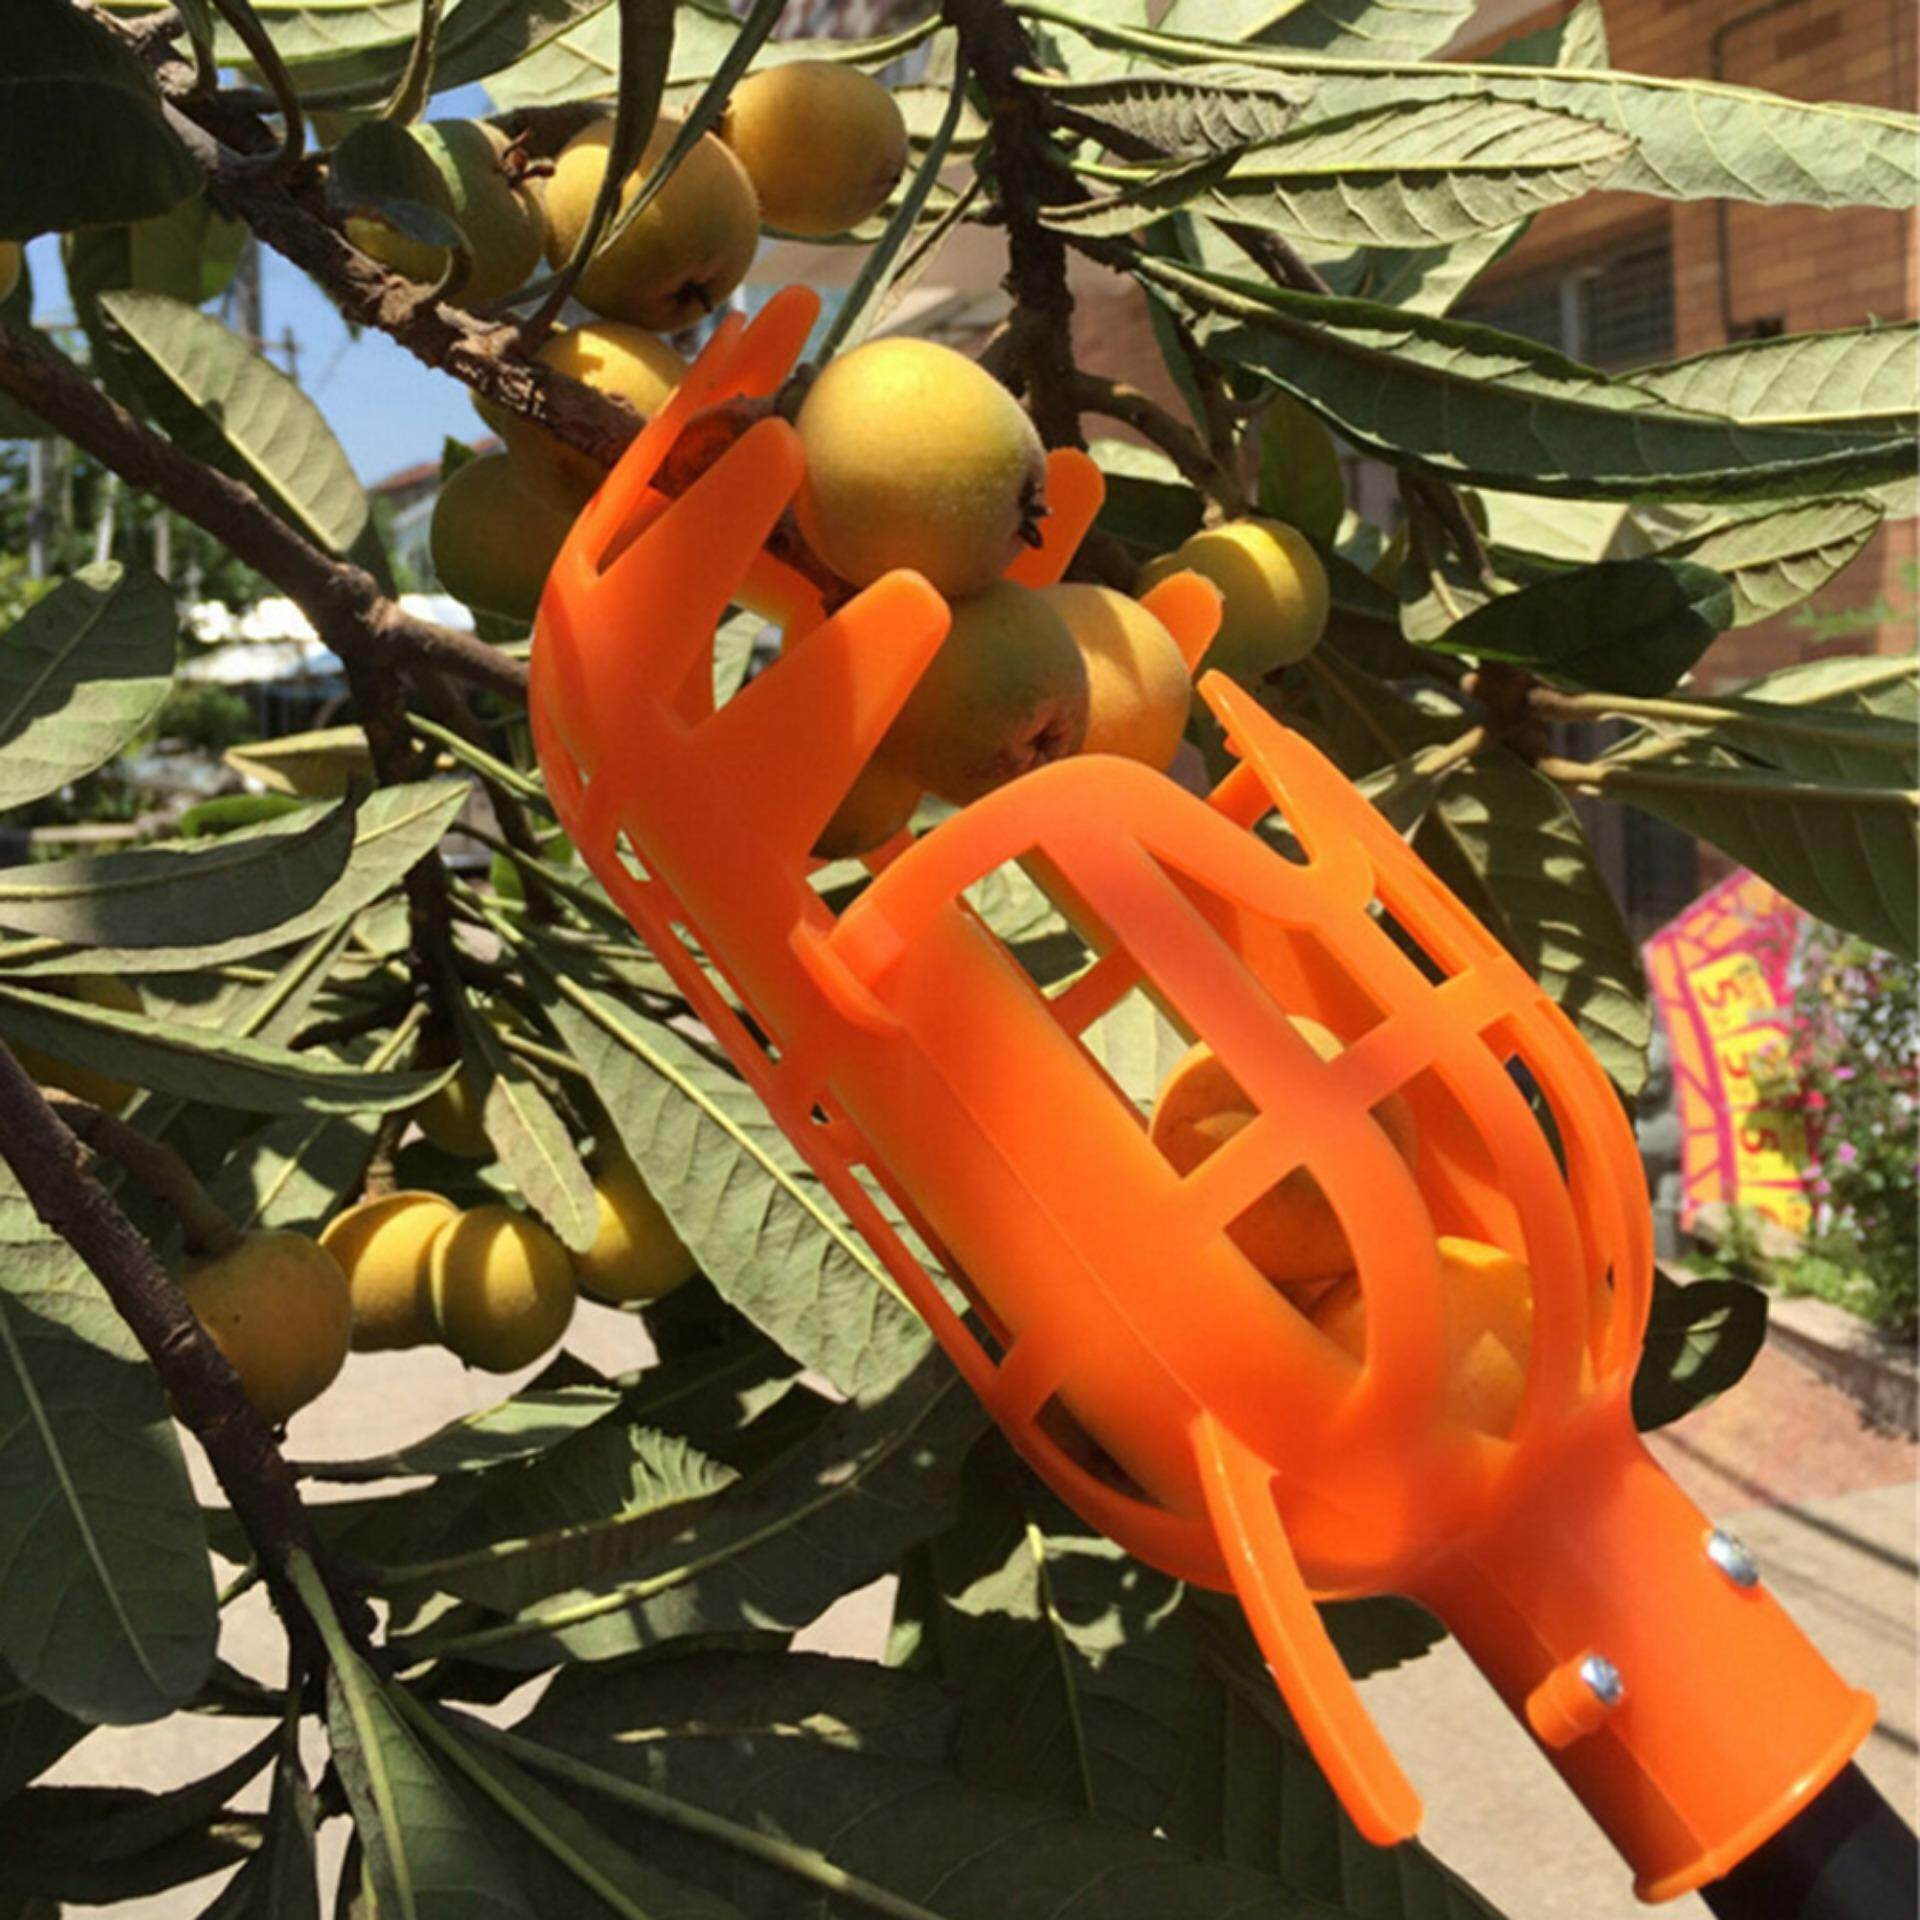 Plastic Fruit Picker Without Pole Fruit Catcher Gardening Picking Tool - intl